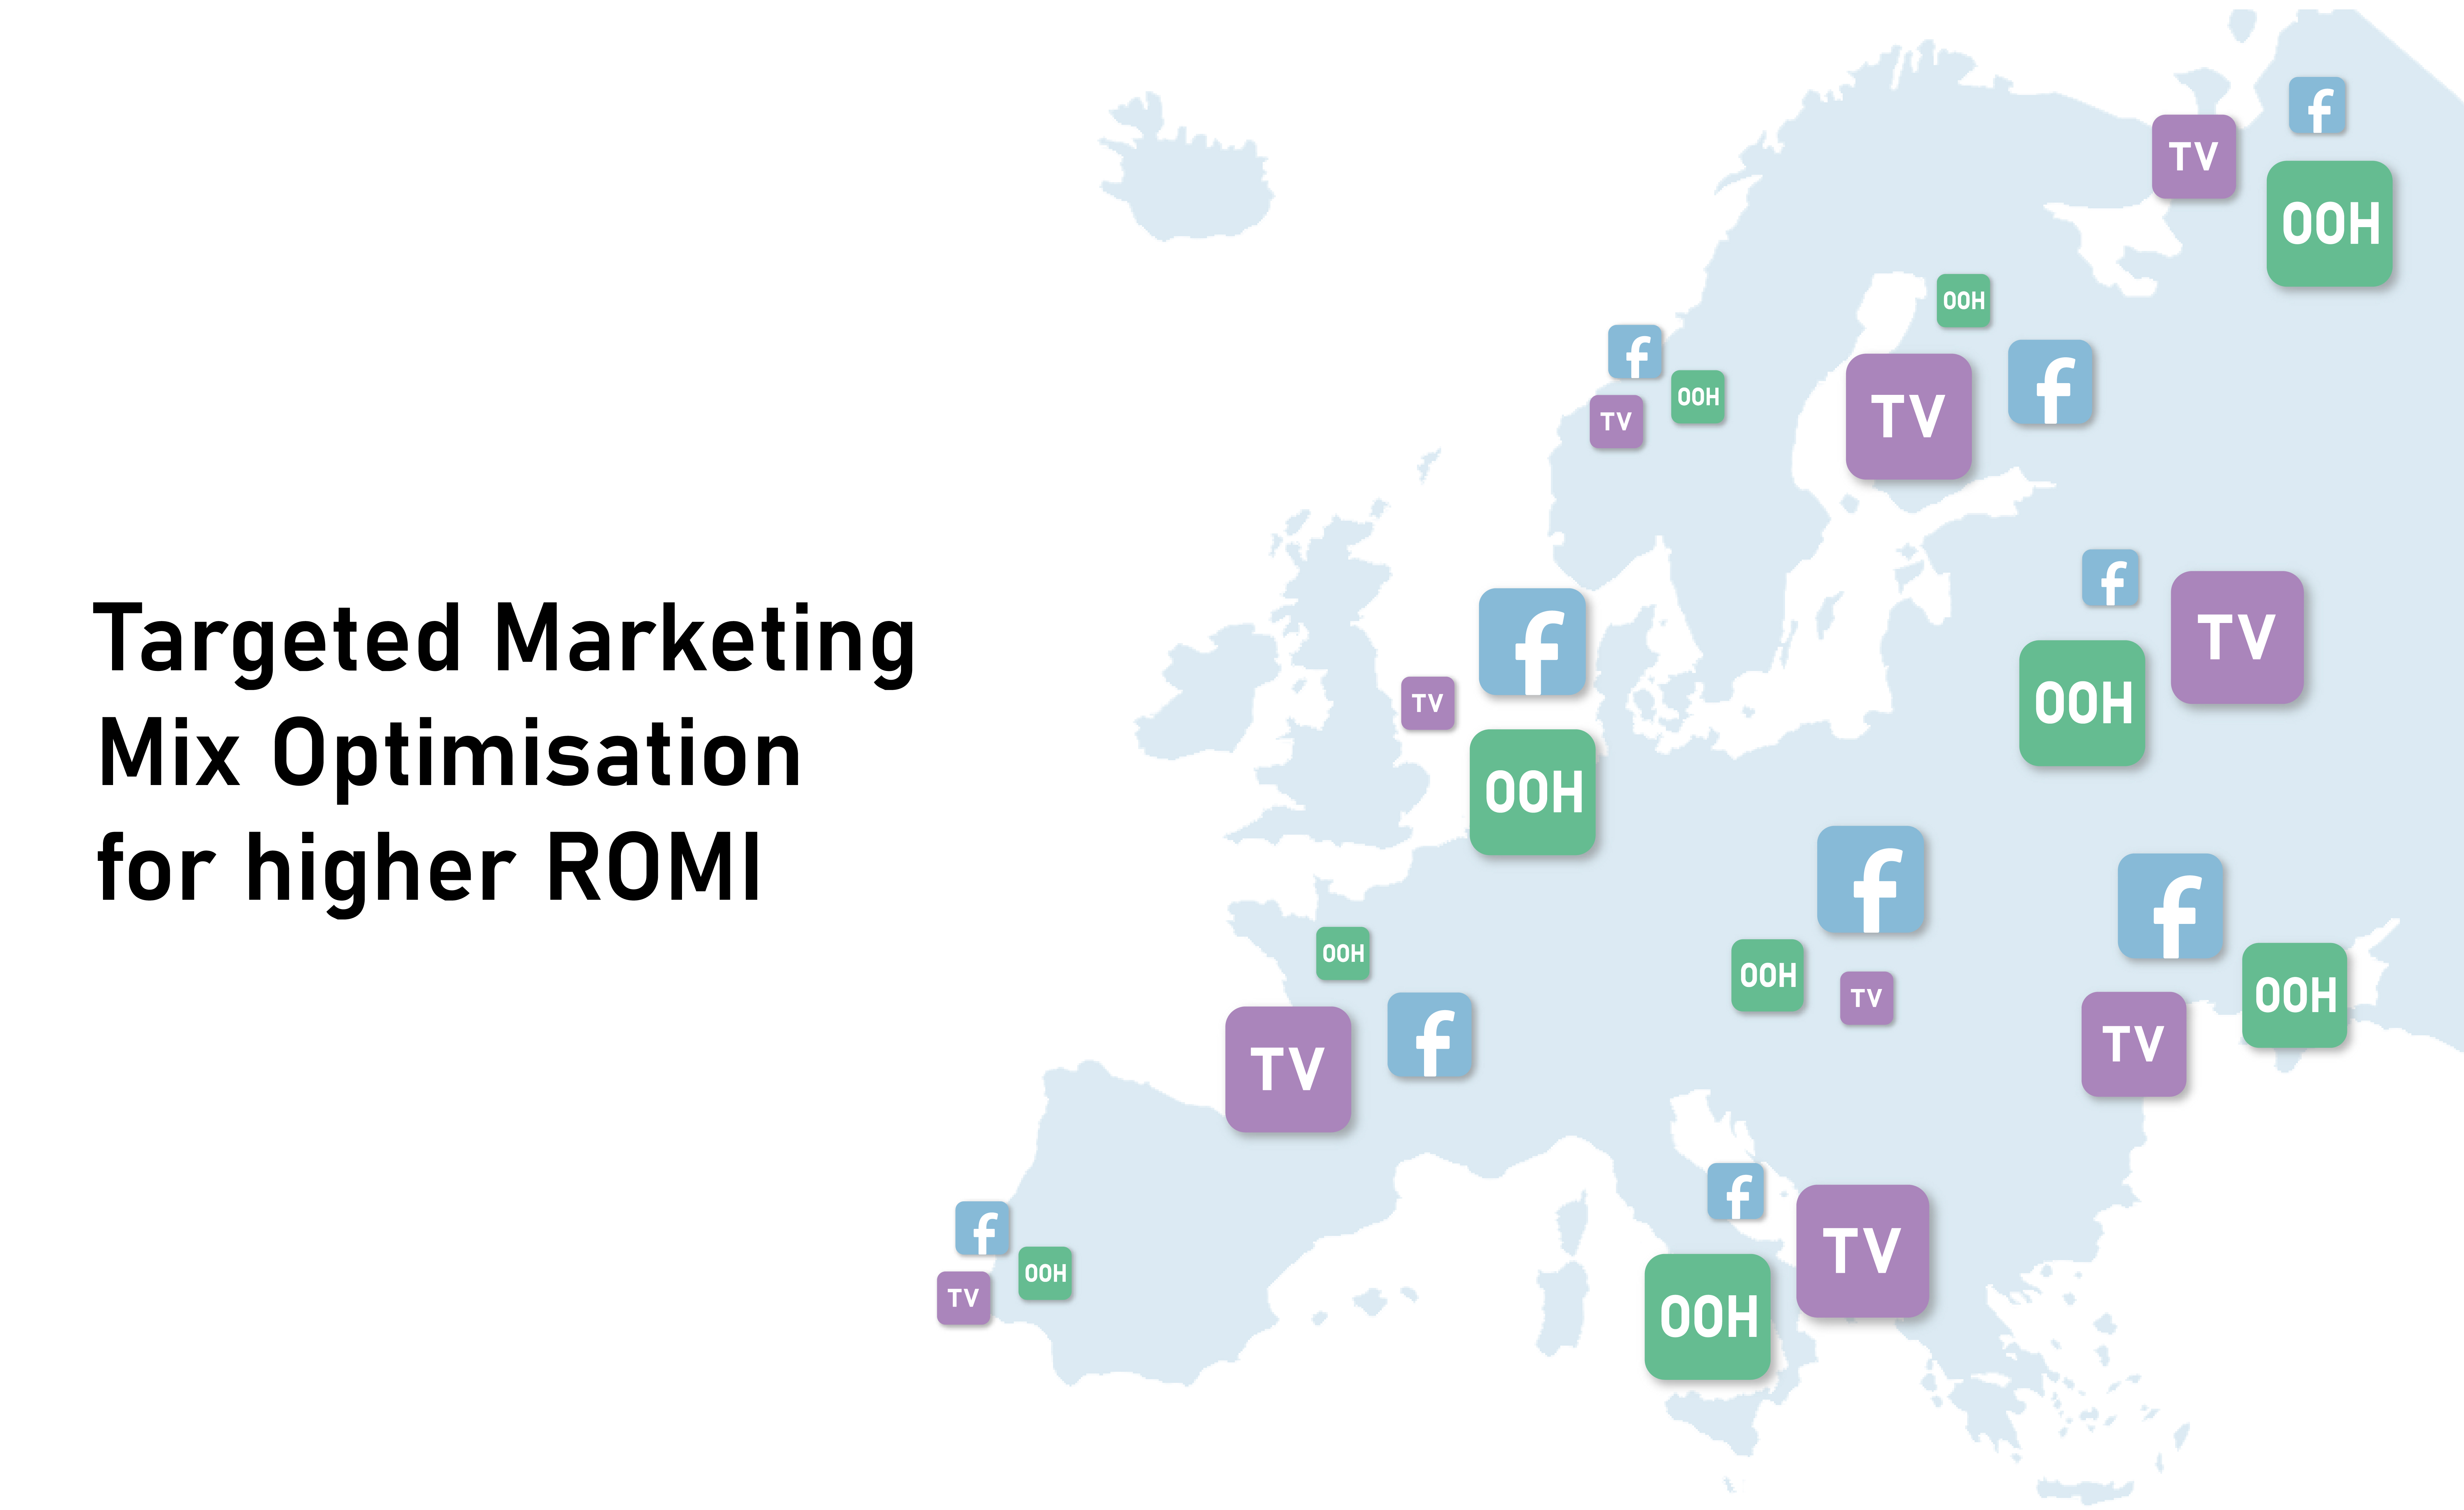 Marketing Mix Modelind, MMM, Media Mix Optimisation, targeted advertising